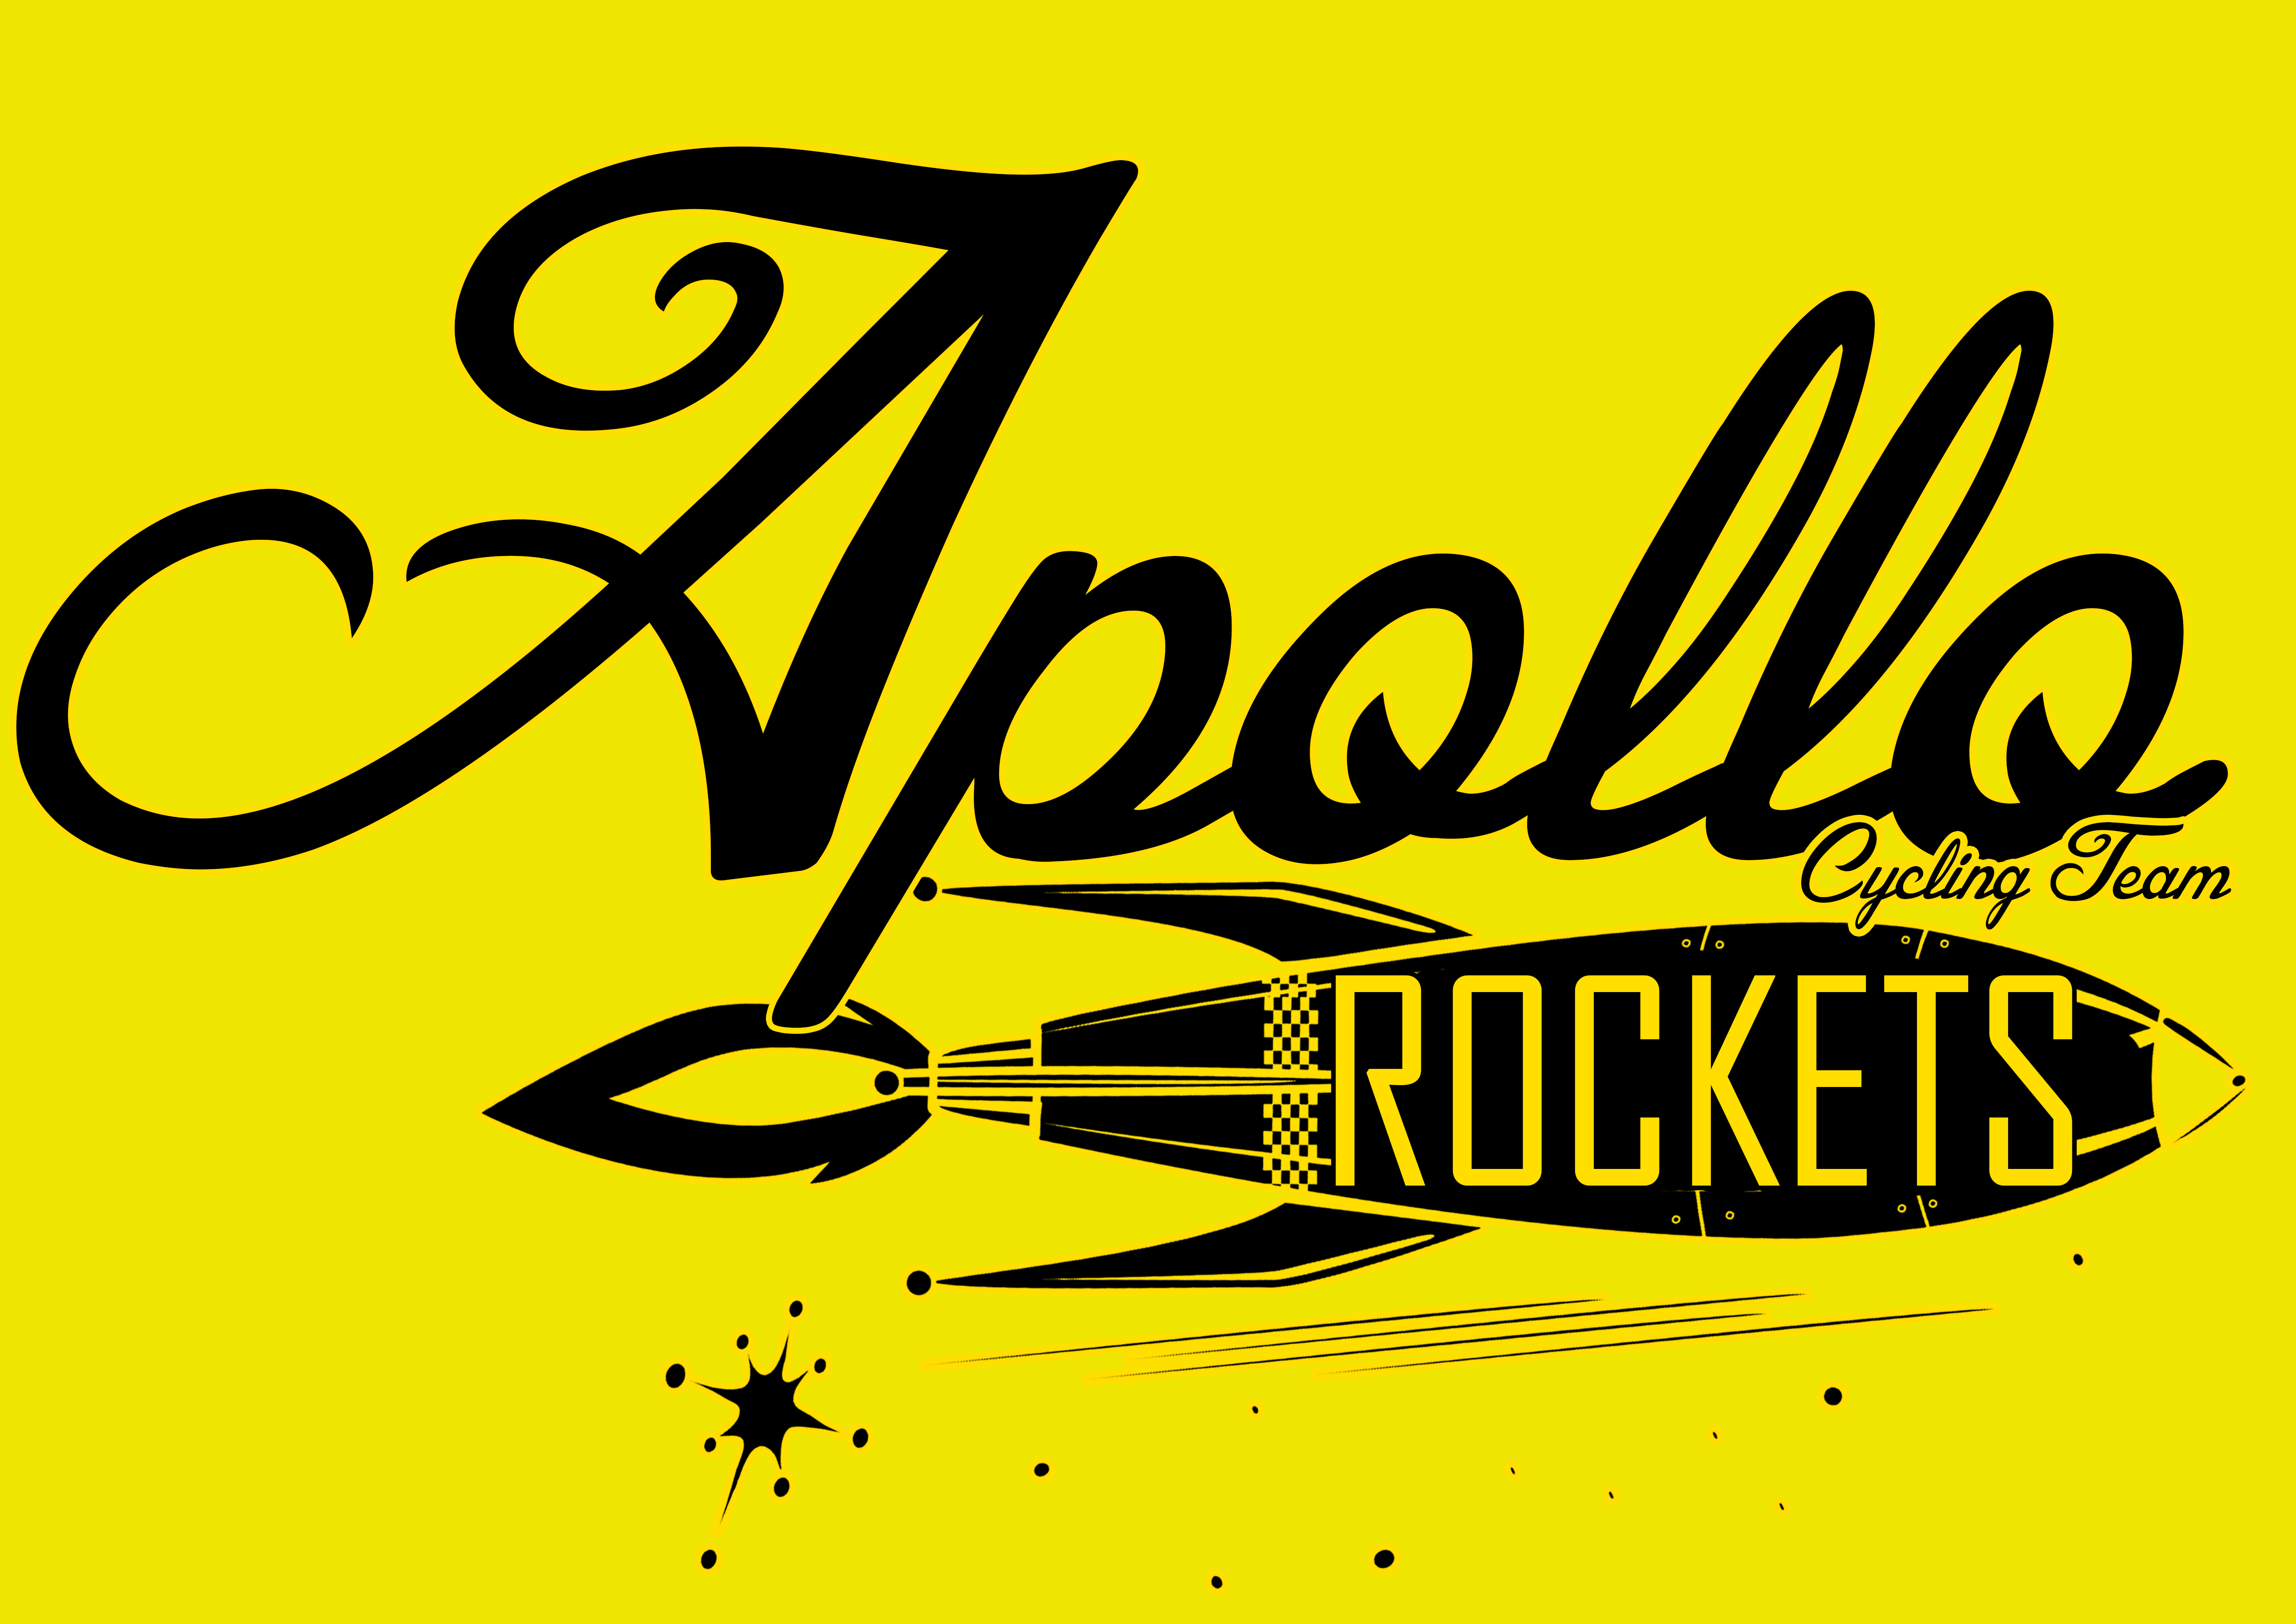 Apollo Rockets tee